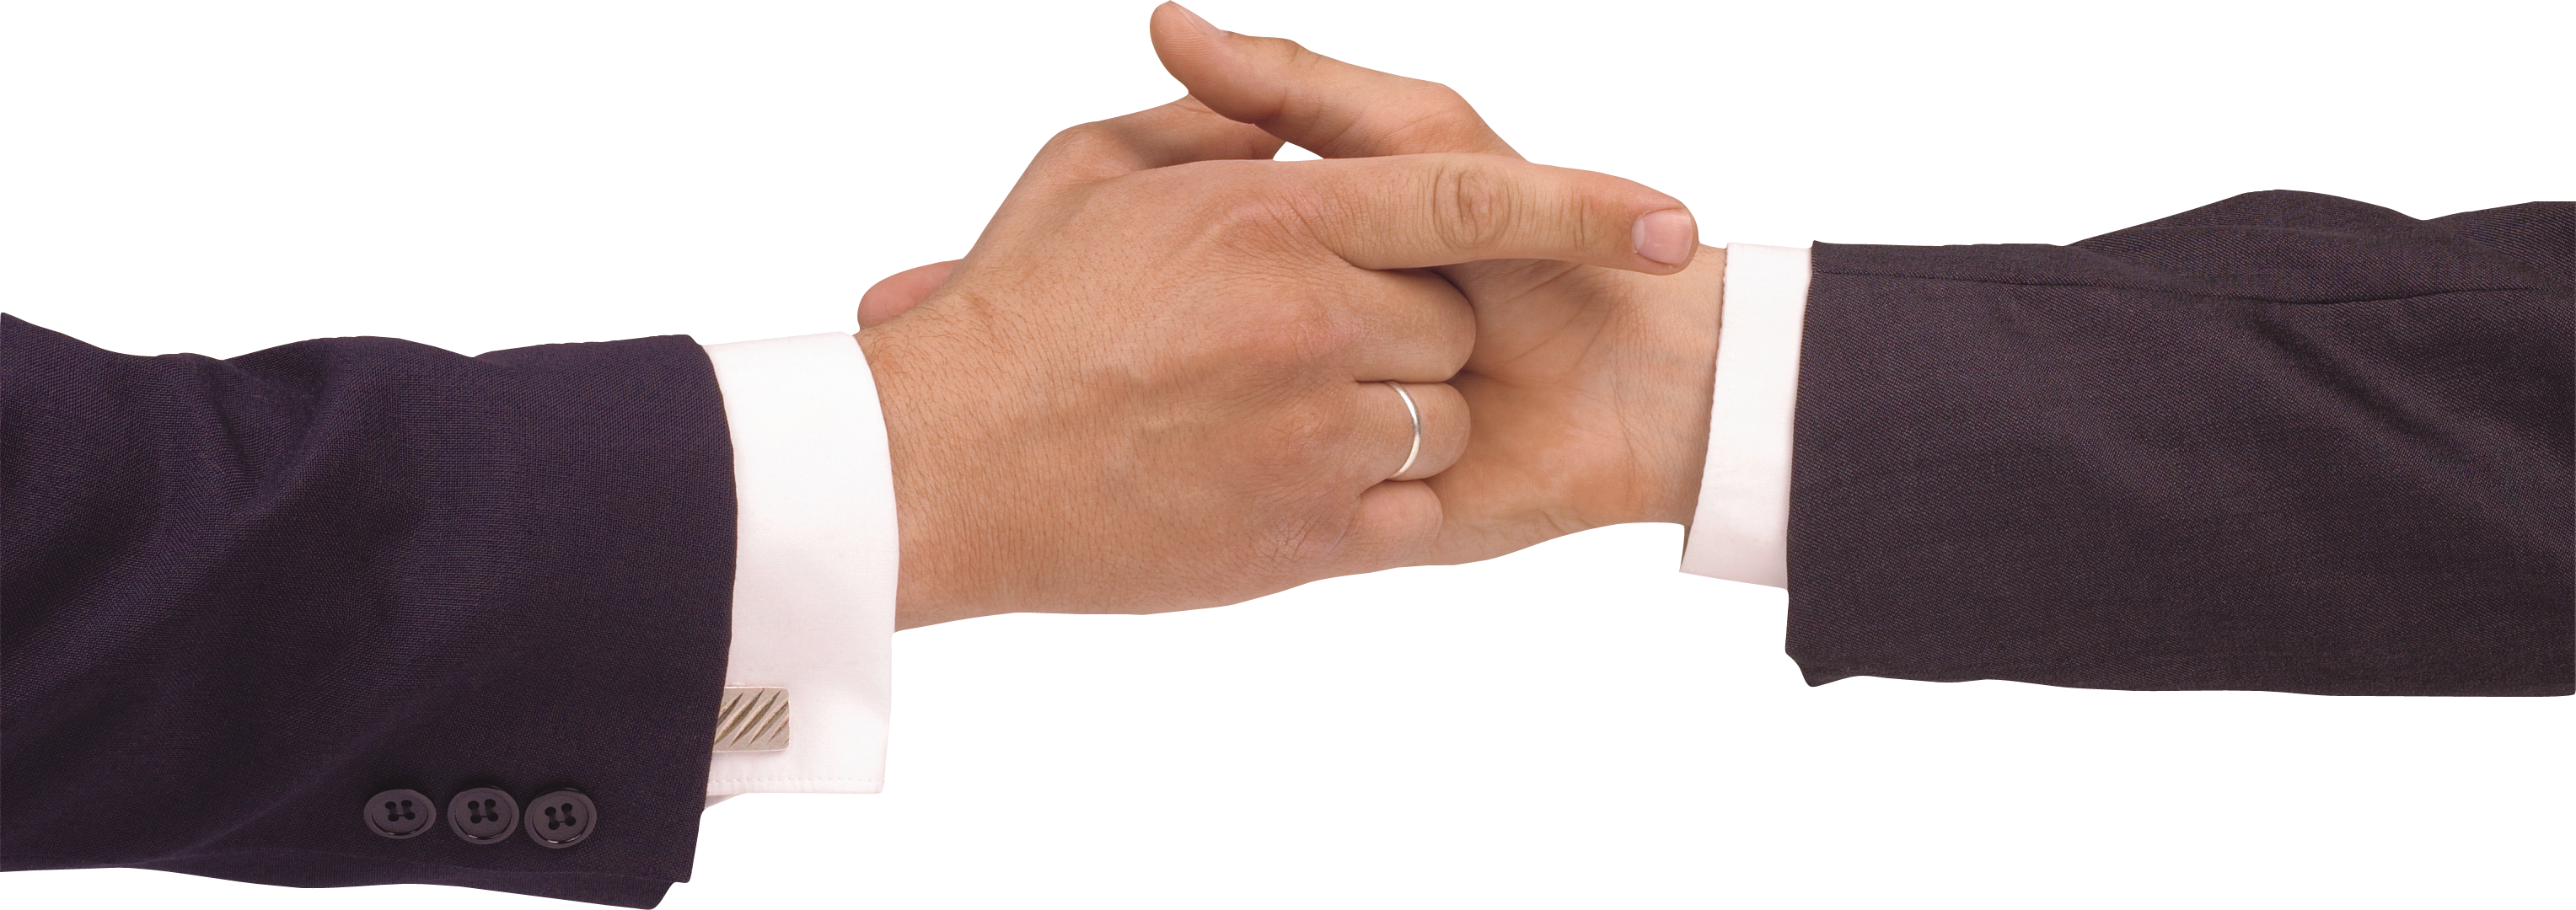 Png hands image free. Handshake clipart sense touch